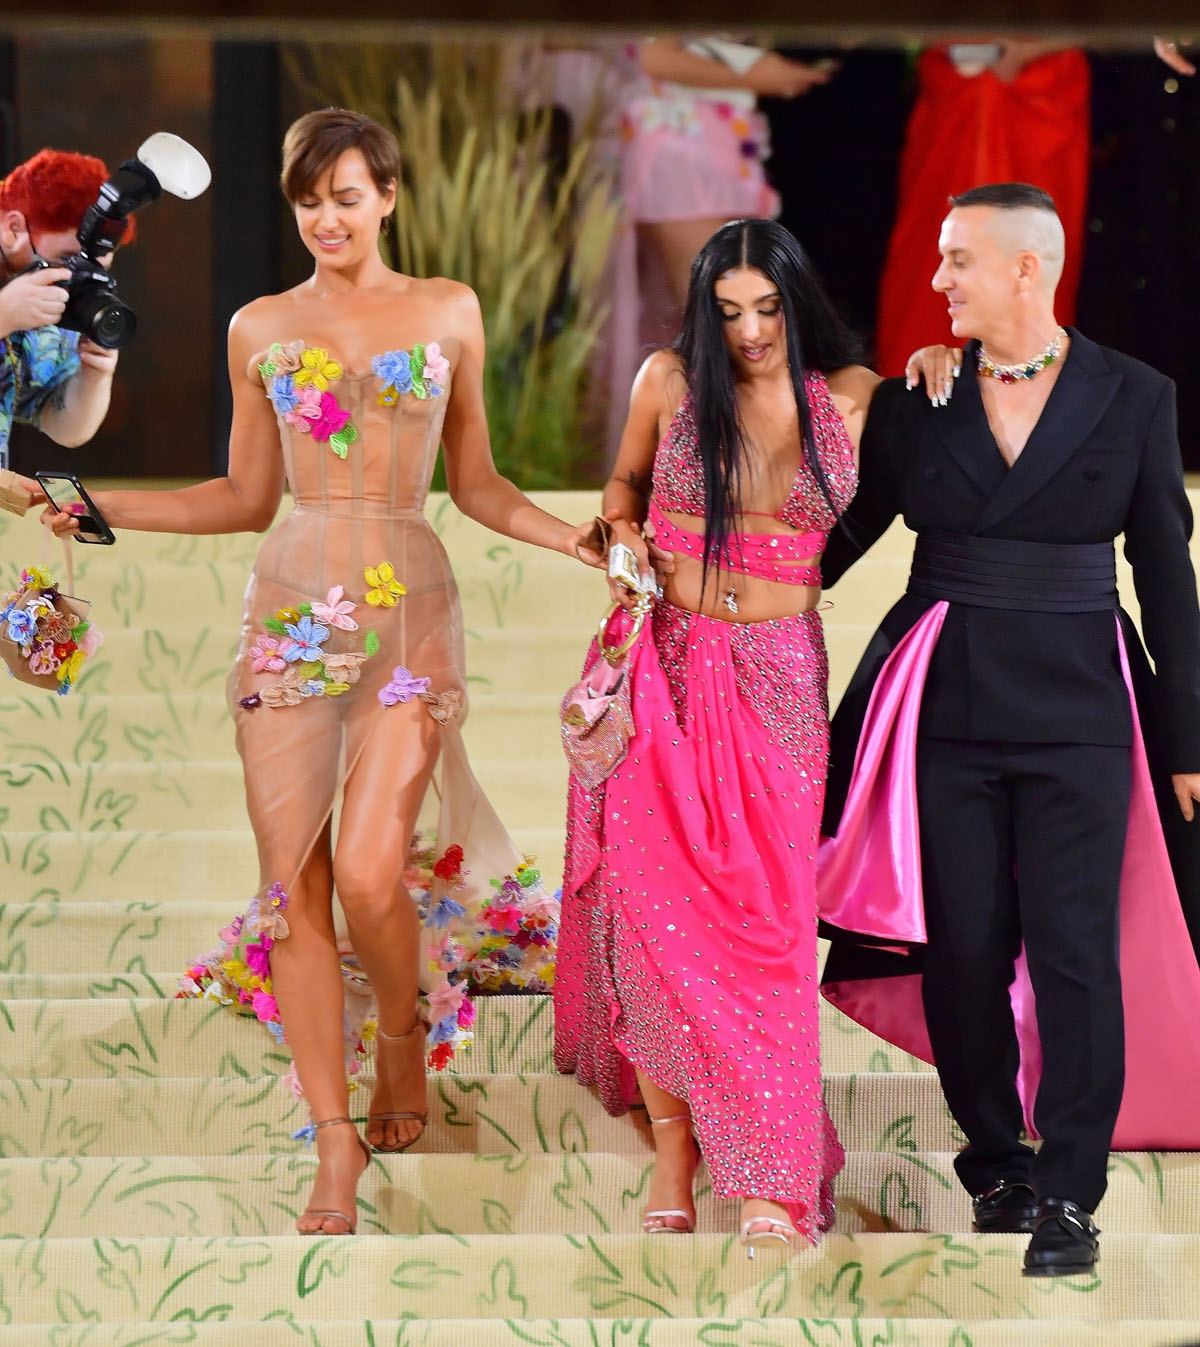 Irina Shayk, Lourdes Leon, and Jeremy Scott leave the Met Gala together in NYC